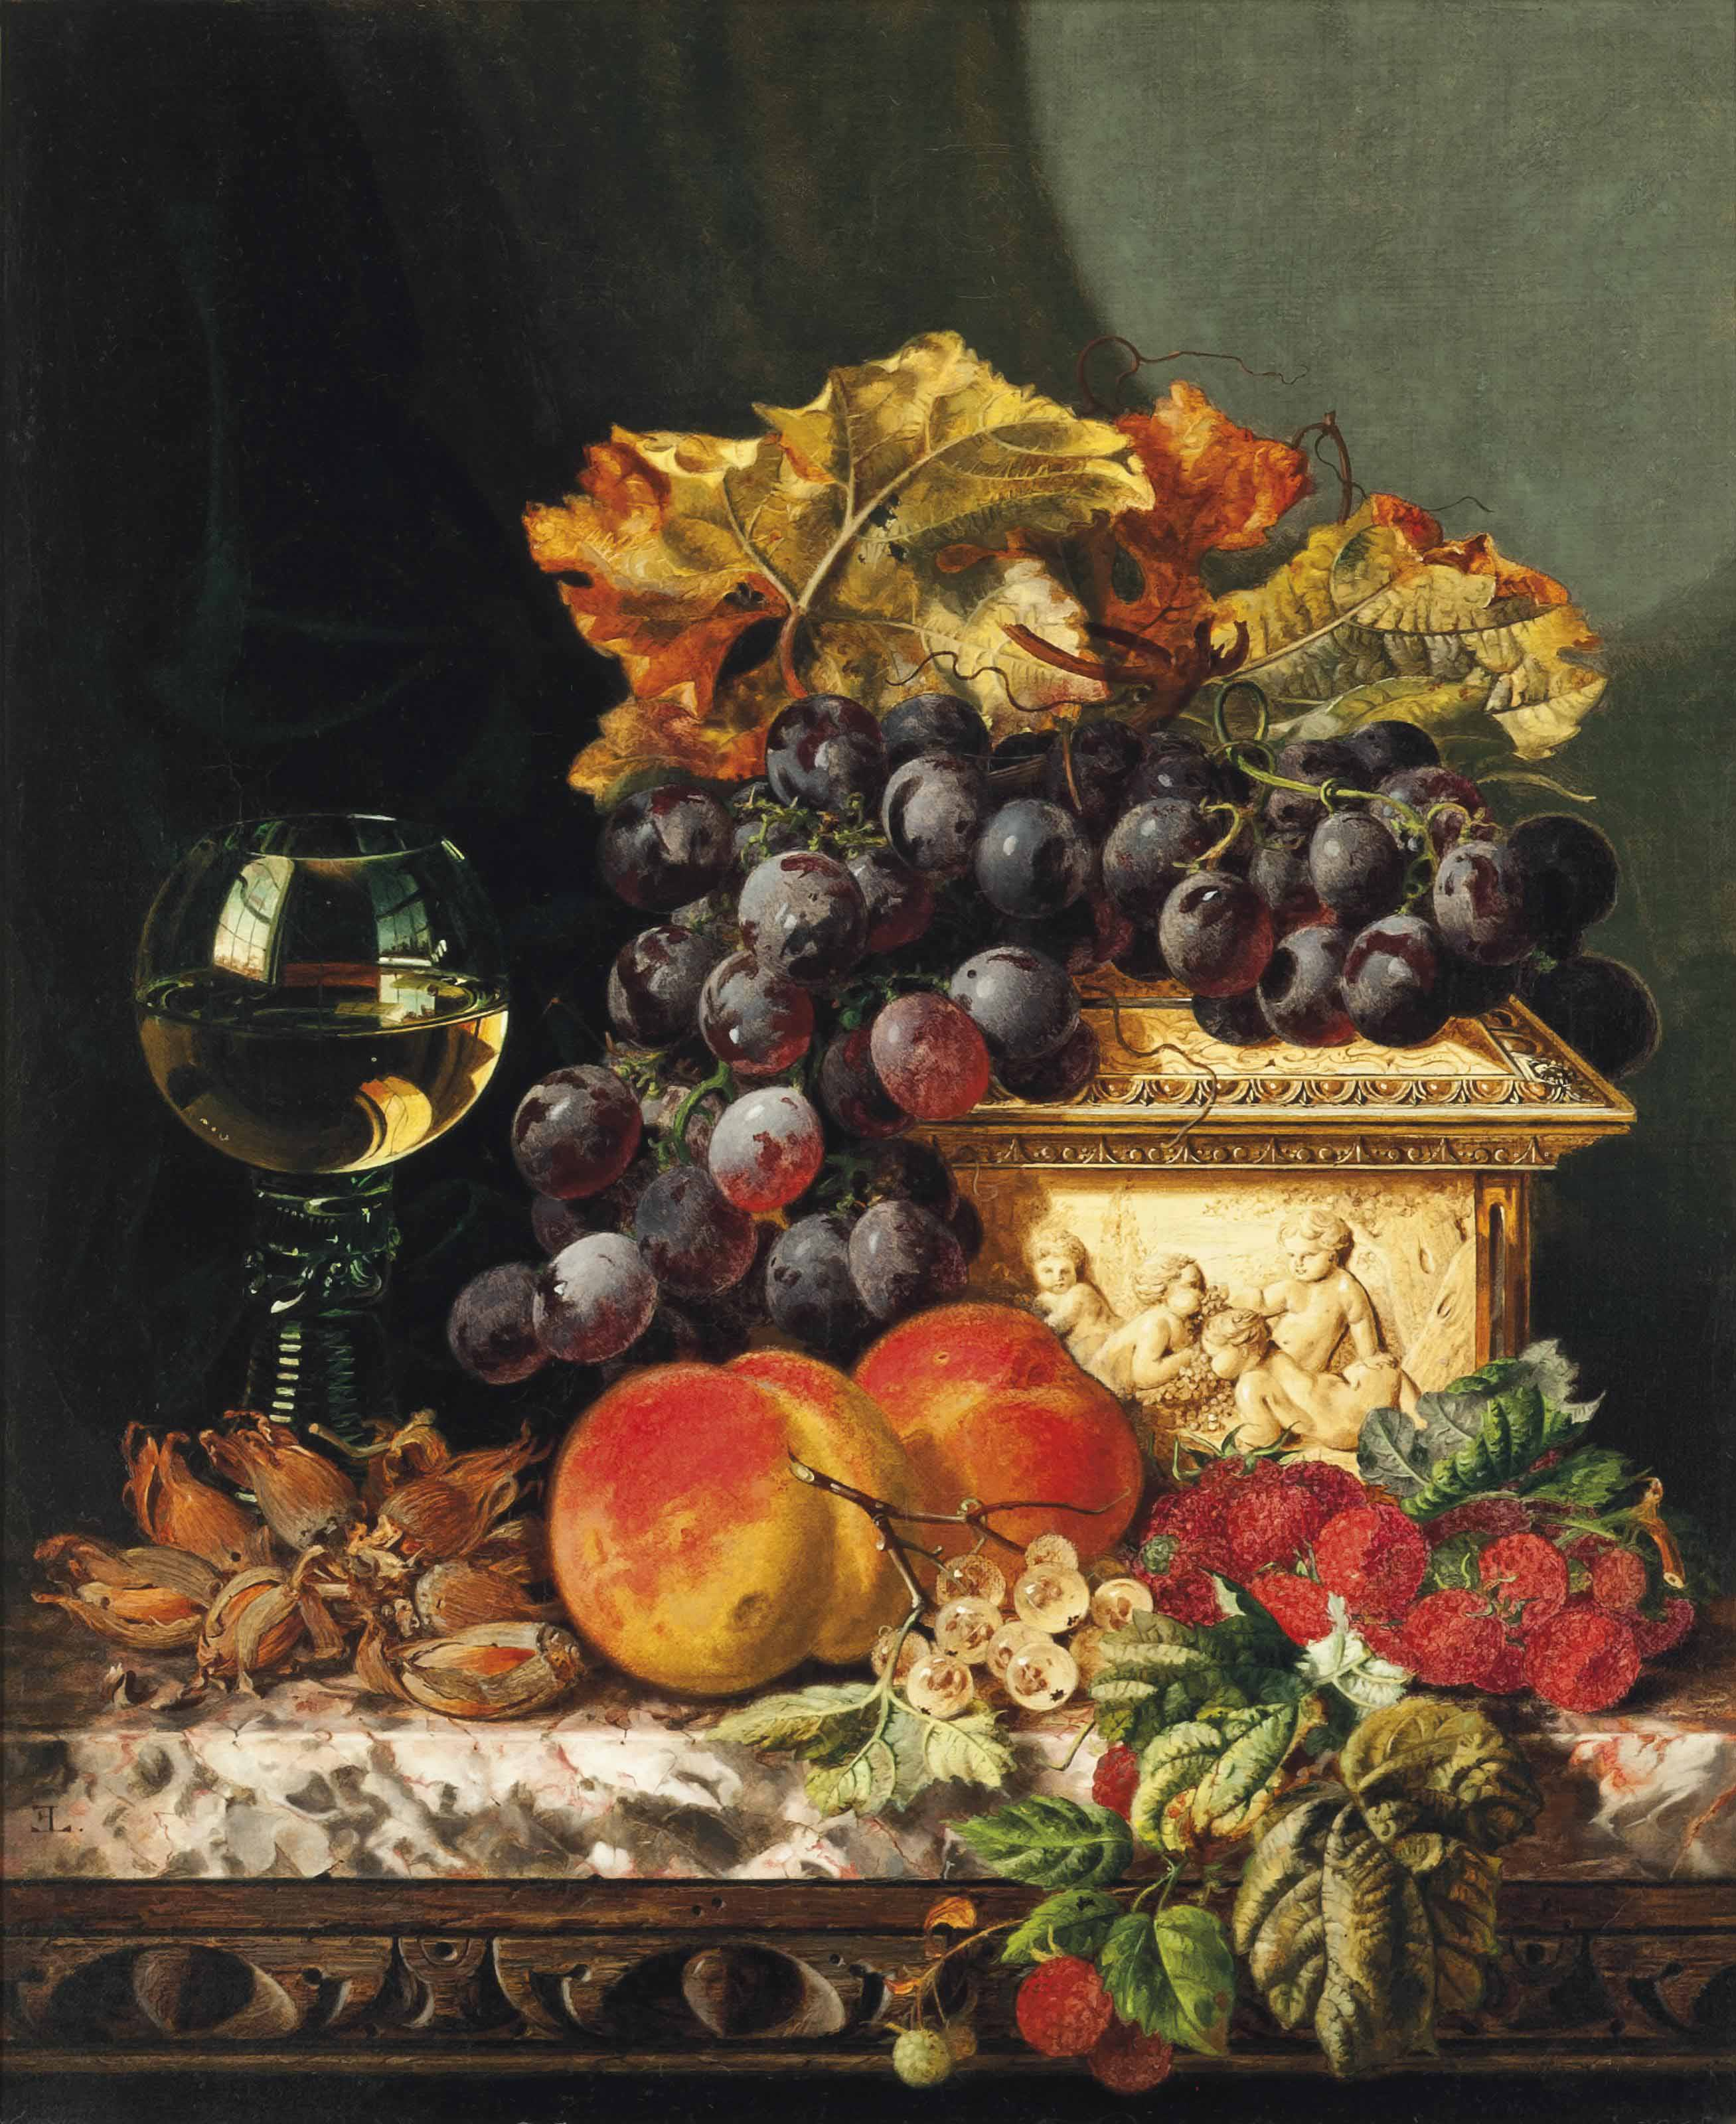 Red grapes, raspberries, peaches, whitecurrants and hazelnuts, with an ivory casket and roemer to the side, on a marble ledge